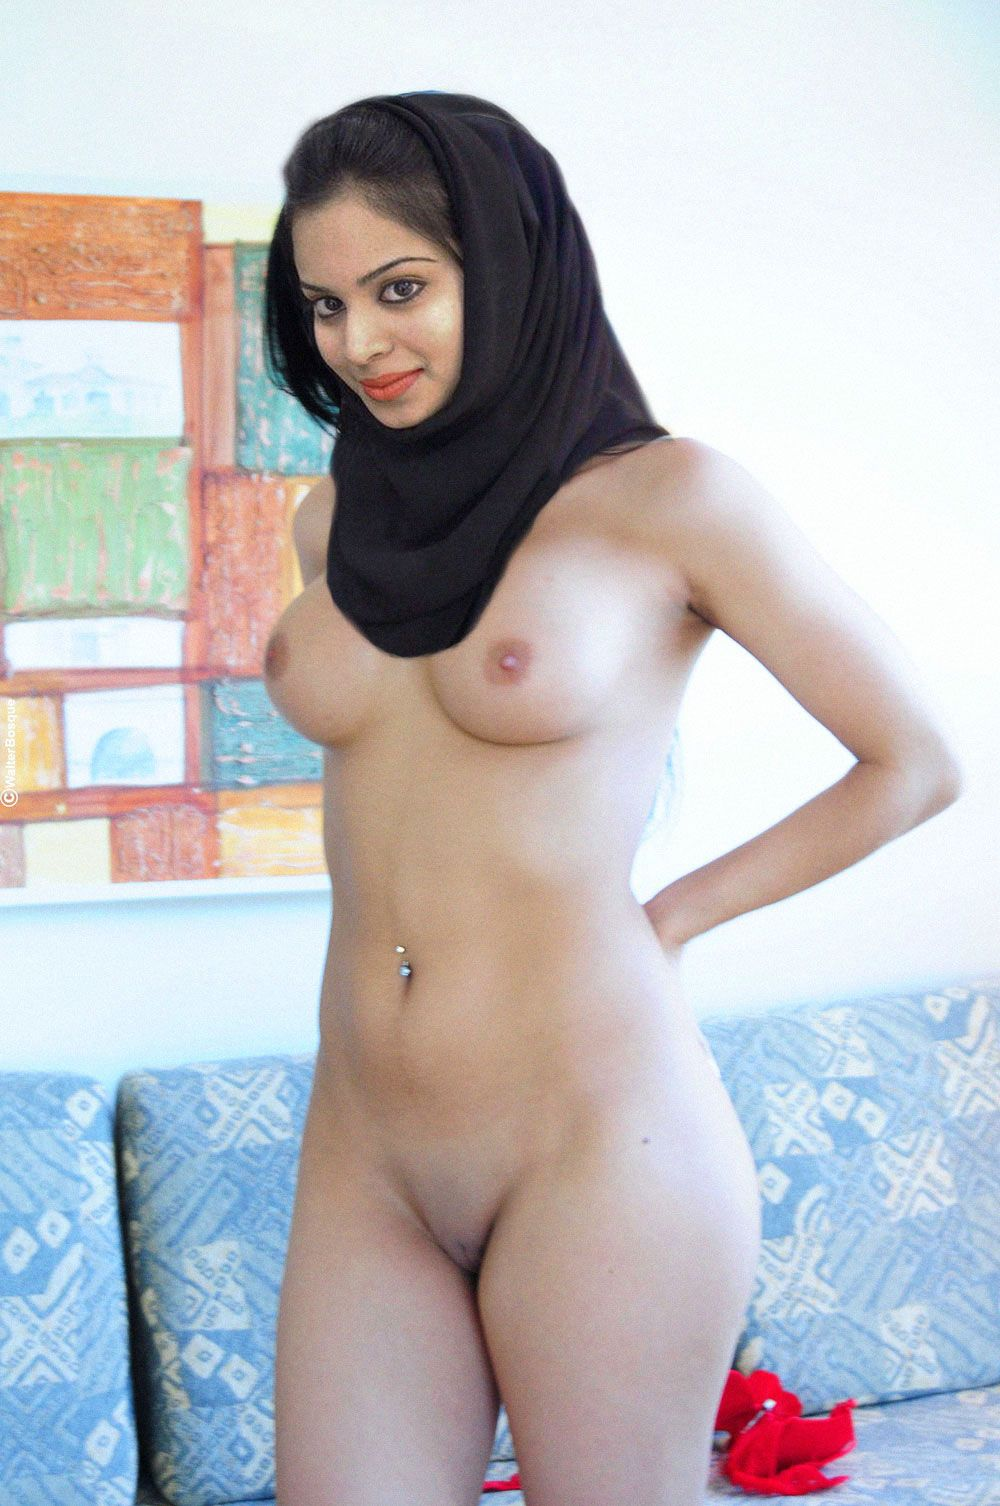 Free download persian cute girls gp video, pornstar sophie evanstures